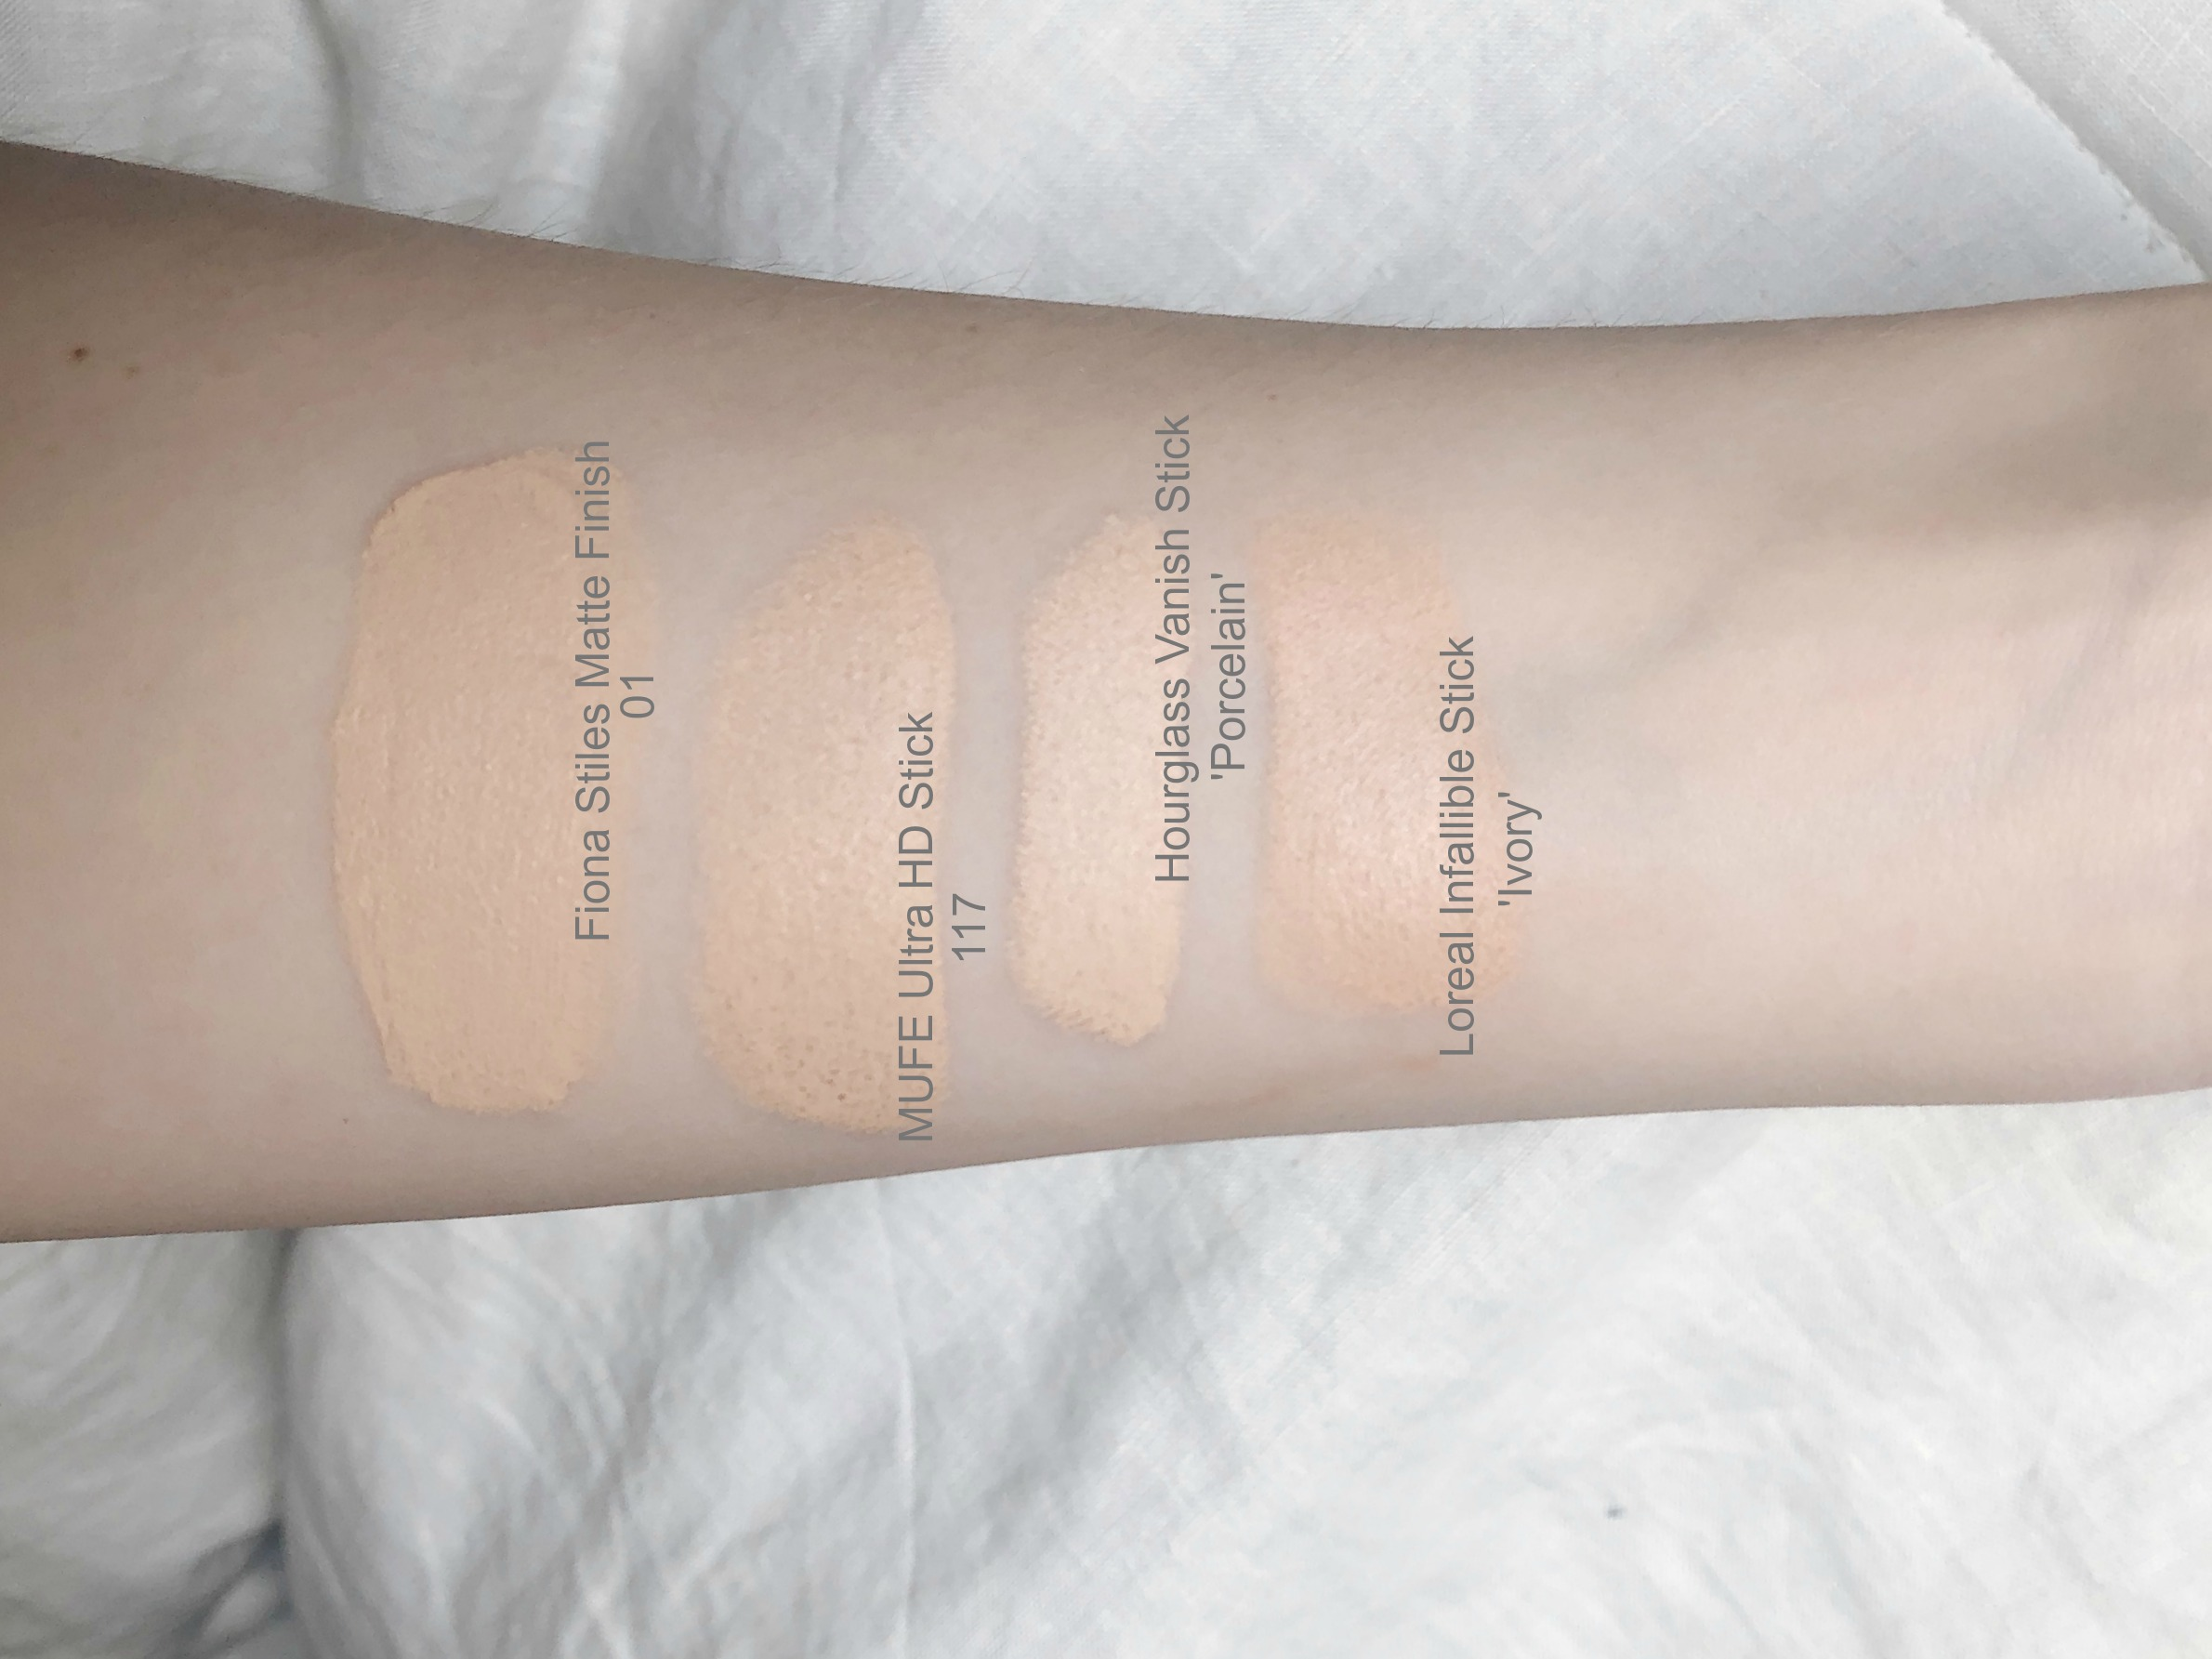 L Oreal Infallible Stick Foundation Review The Lipstick Narratives